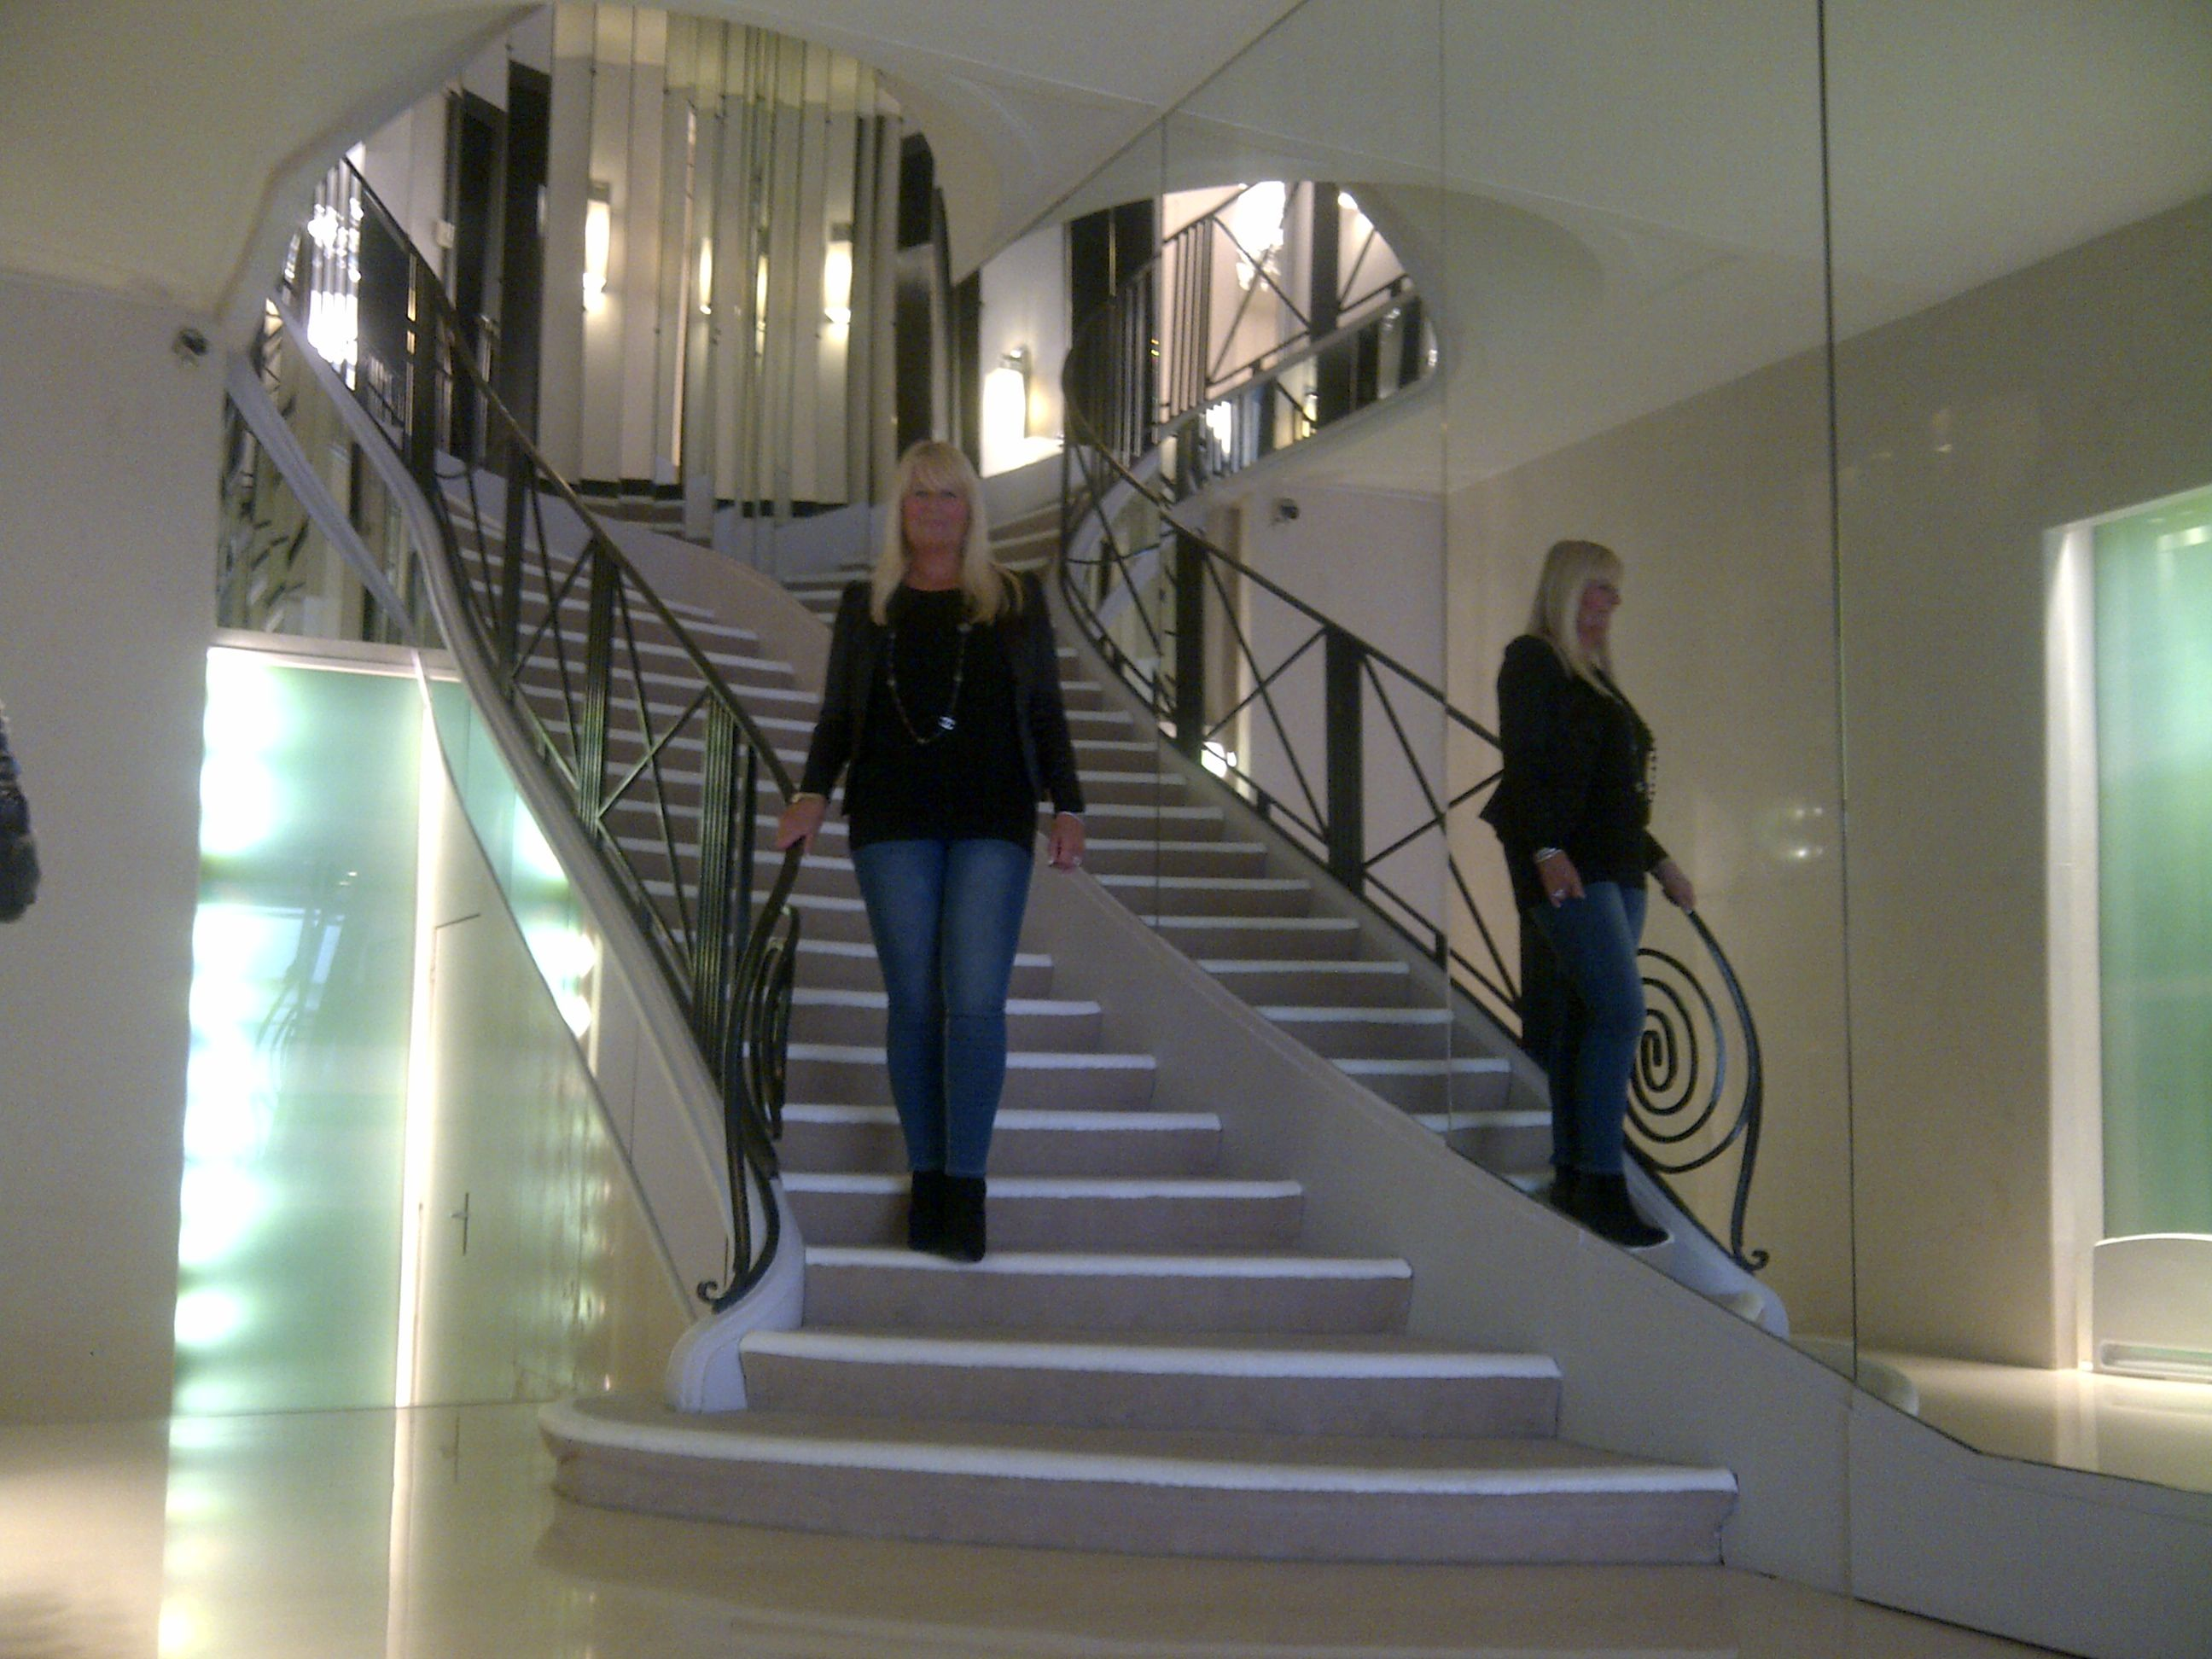 My visit to Coco Chanel's atelier and apartment, 31 Rue Cambon, Paris - and I got to descend the iconic staircase